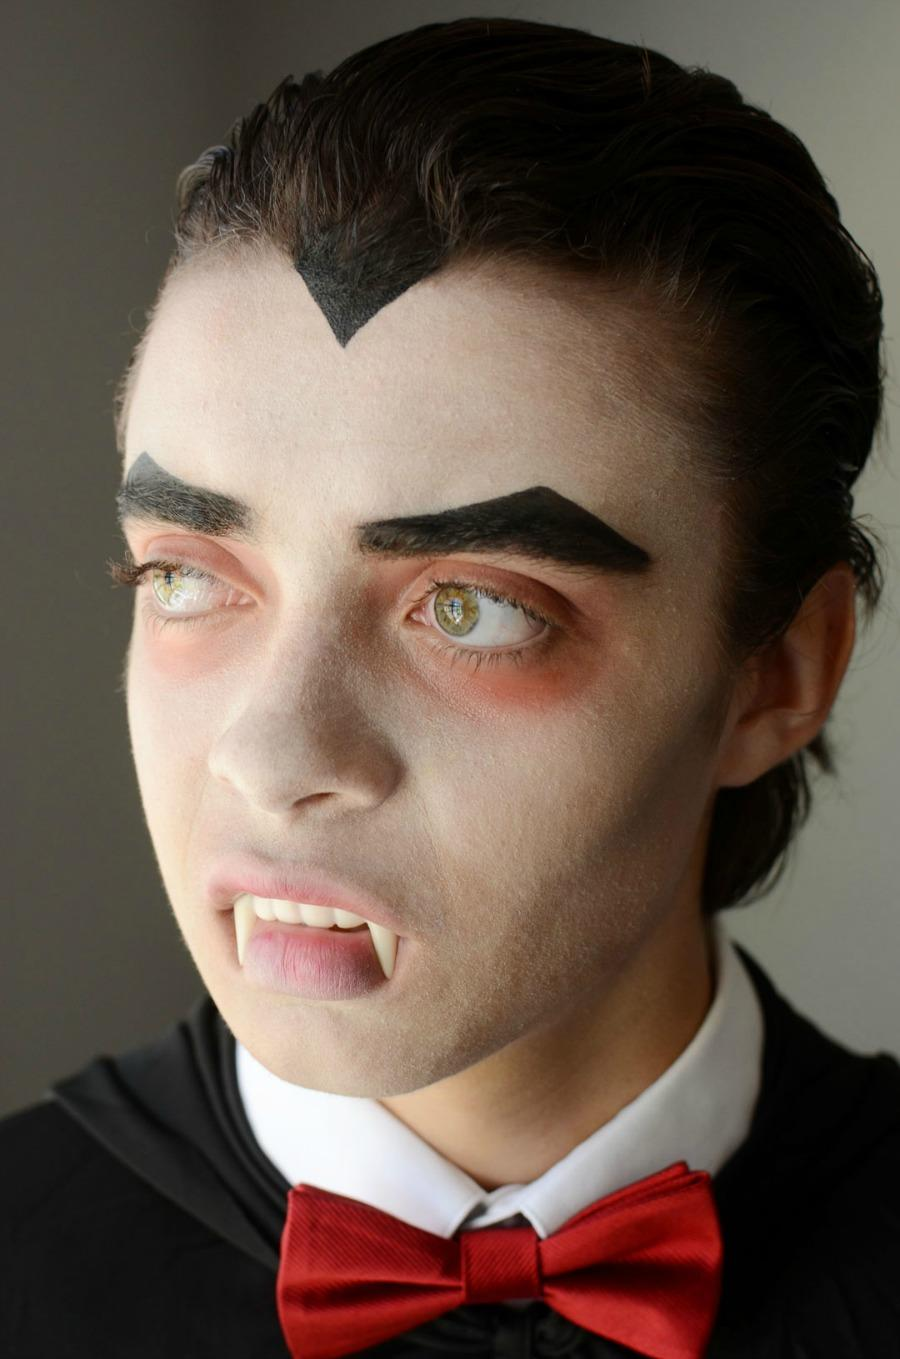 Movie Monster Makeup: Go Old-School Dracula for Halloween